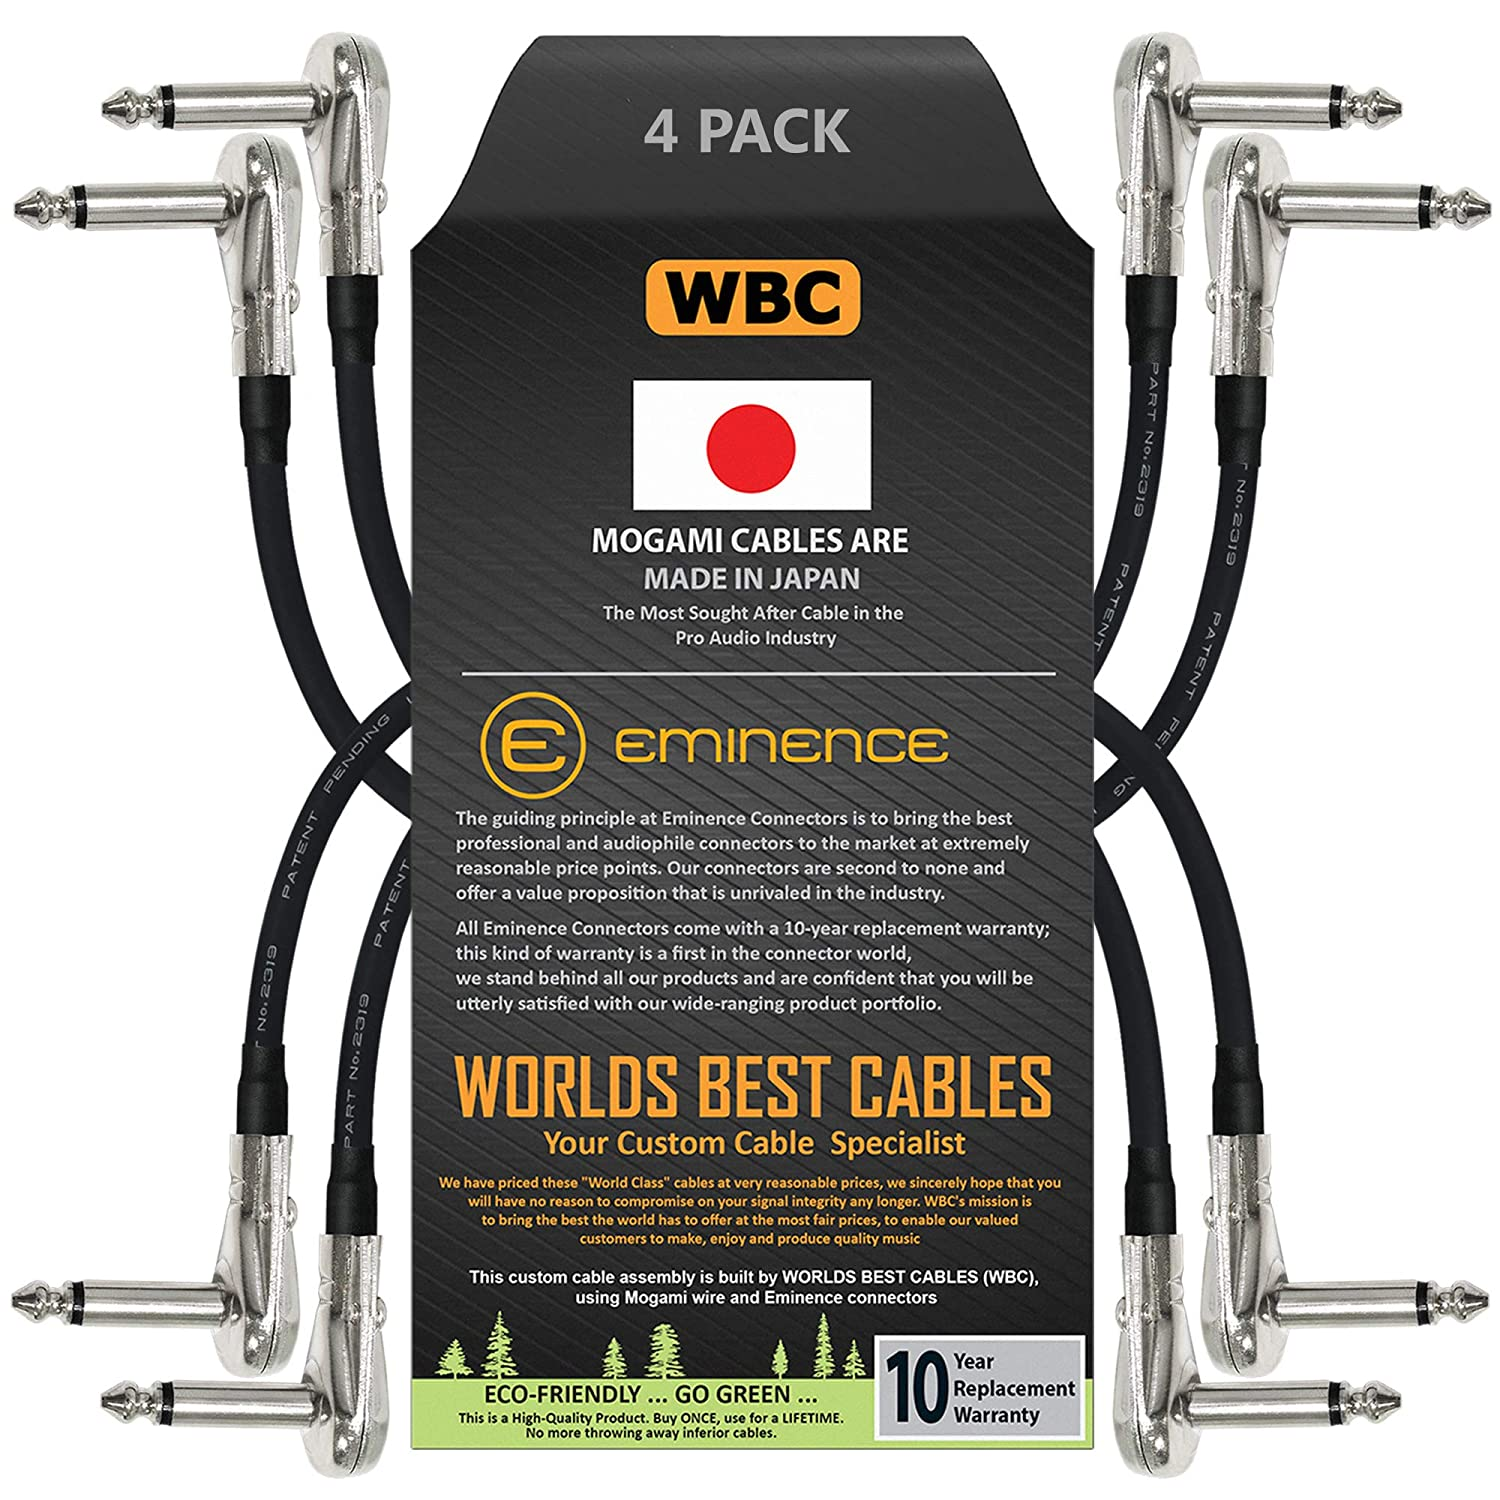 4 Units - 6 Inch Pedal Instrument Dealing full Ranking TOP2 price reduction Custo Cable Effects Patch